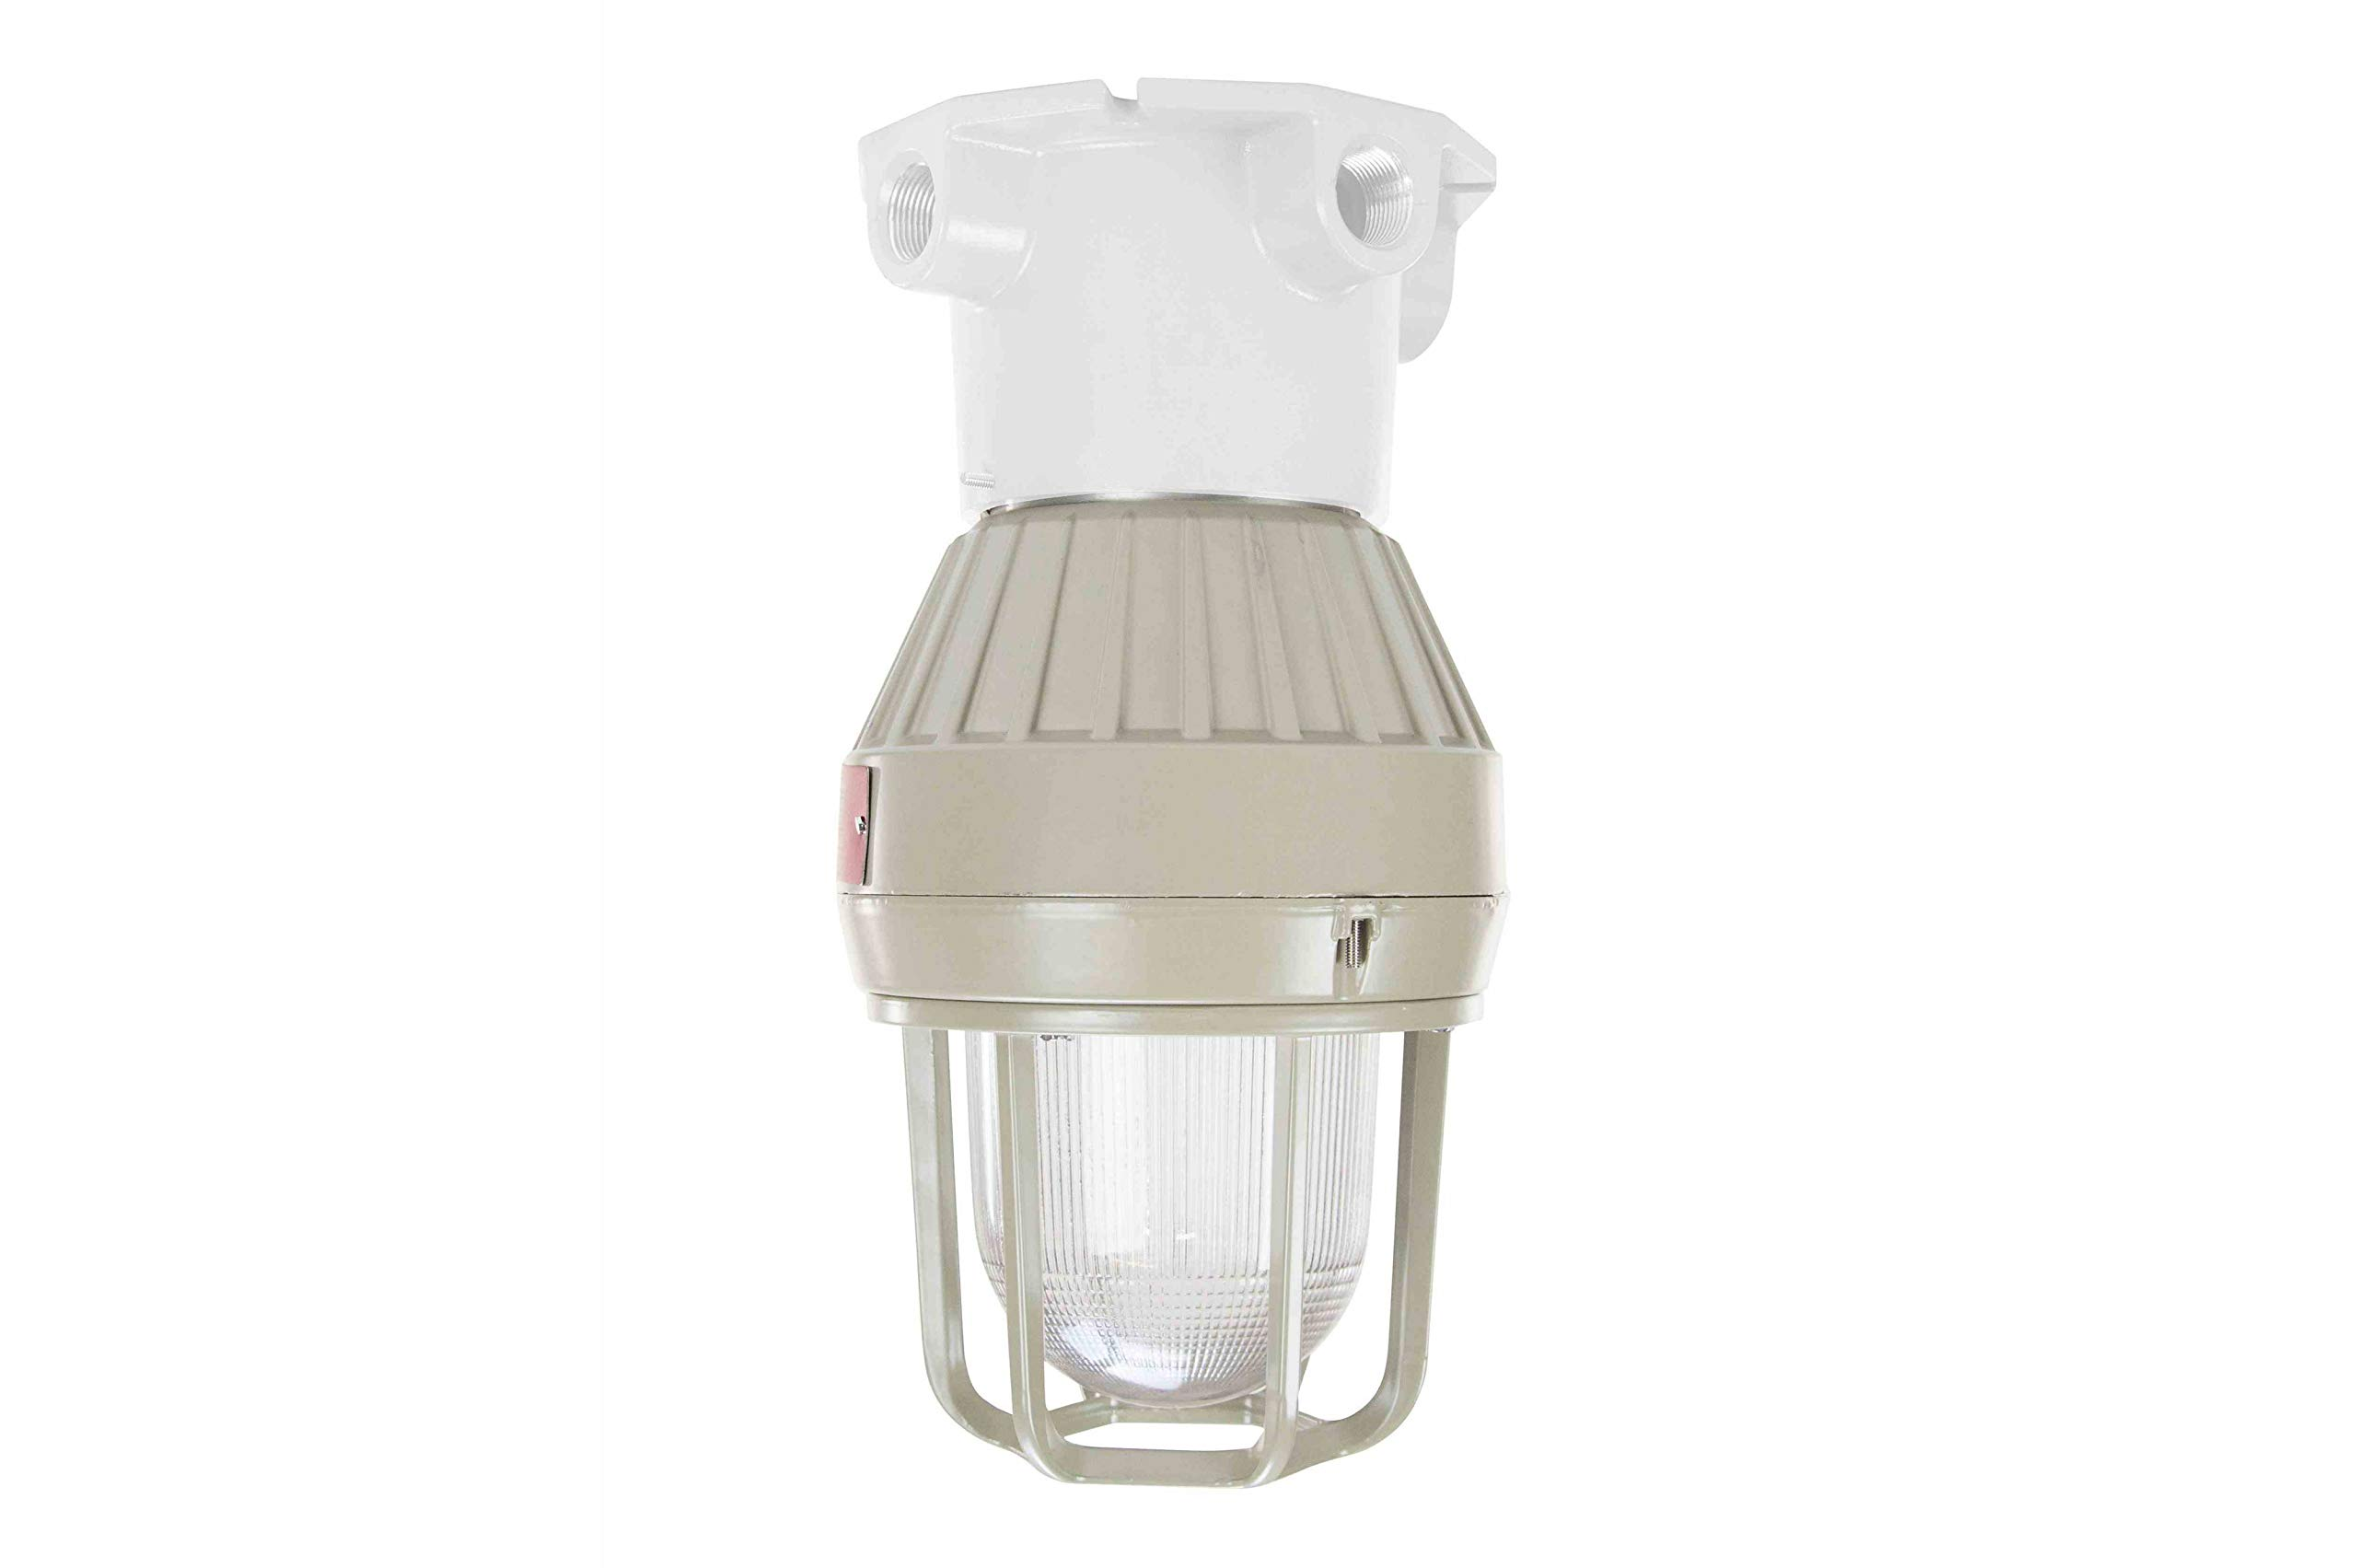 Explosion Proof LED Strobe Light - Replacement Lamp Body w/LED Assembly - NO Mount Guard OR Globe